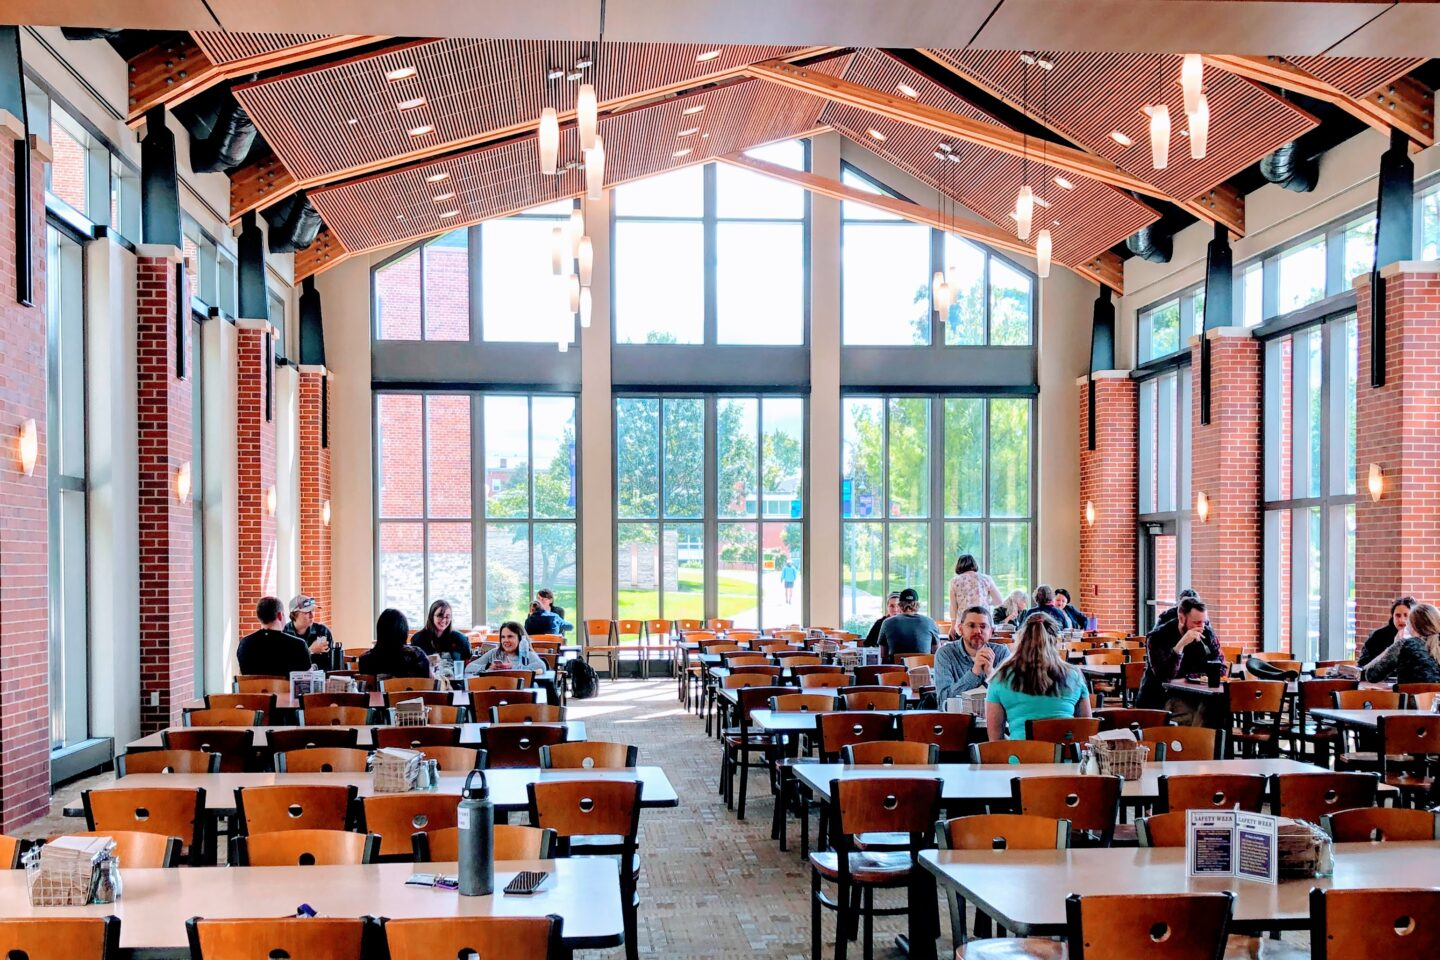 Gorgeous dining hall at a college campus